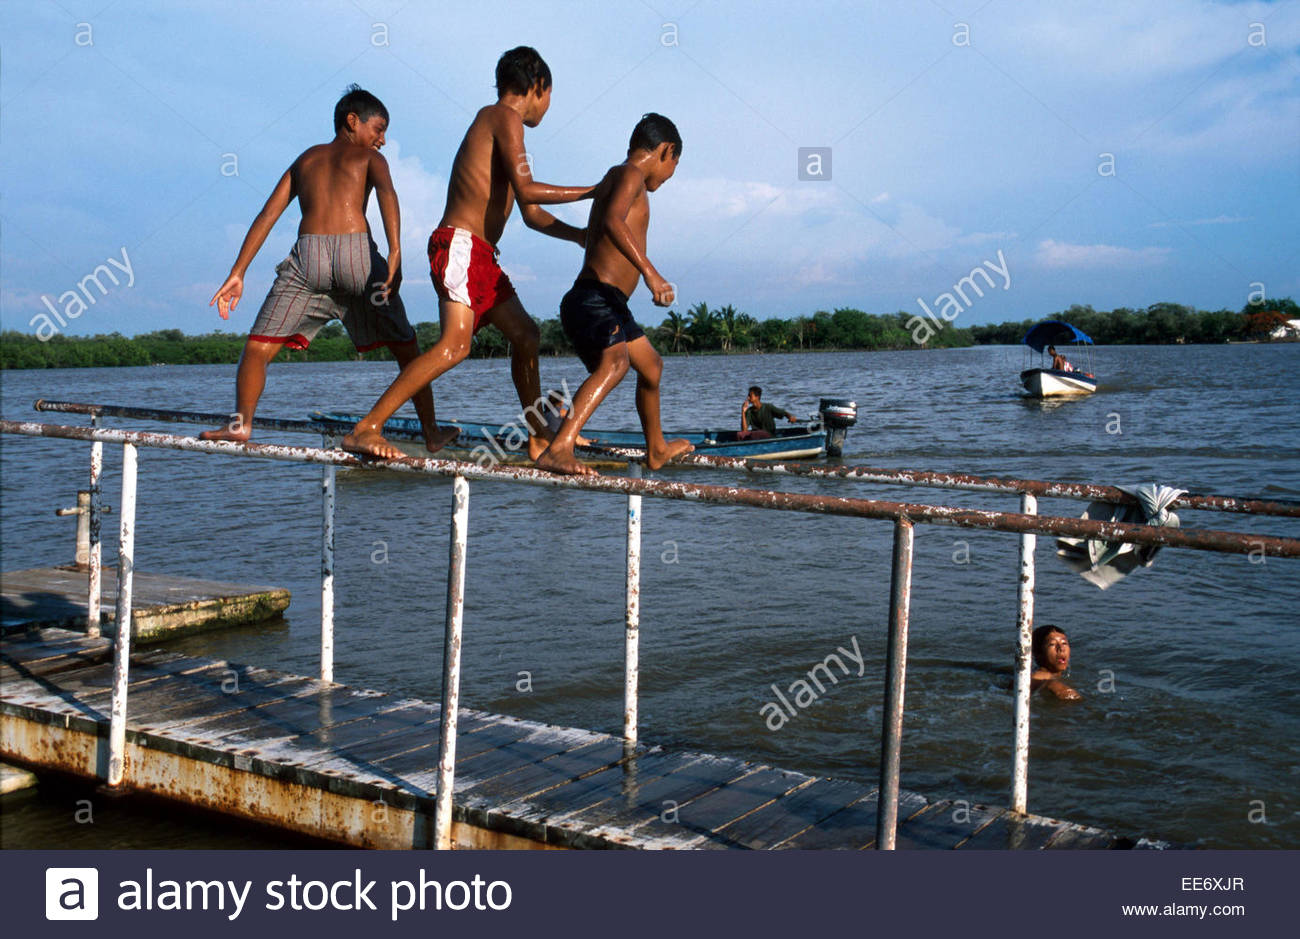 Mexcaltitan, Children playing in the lagoon - Stock Image